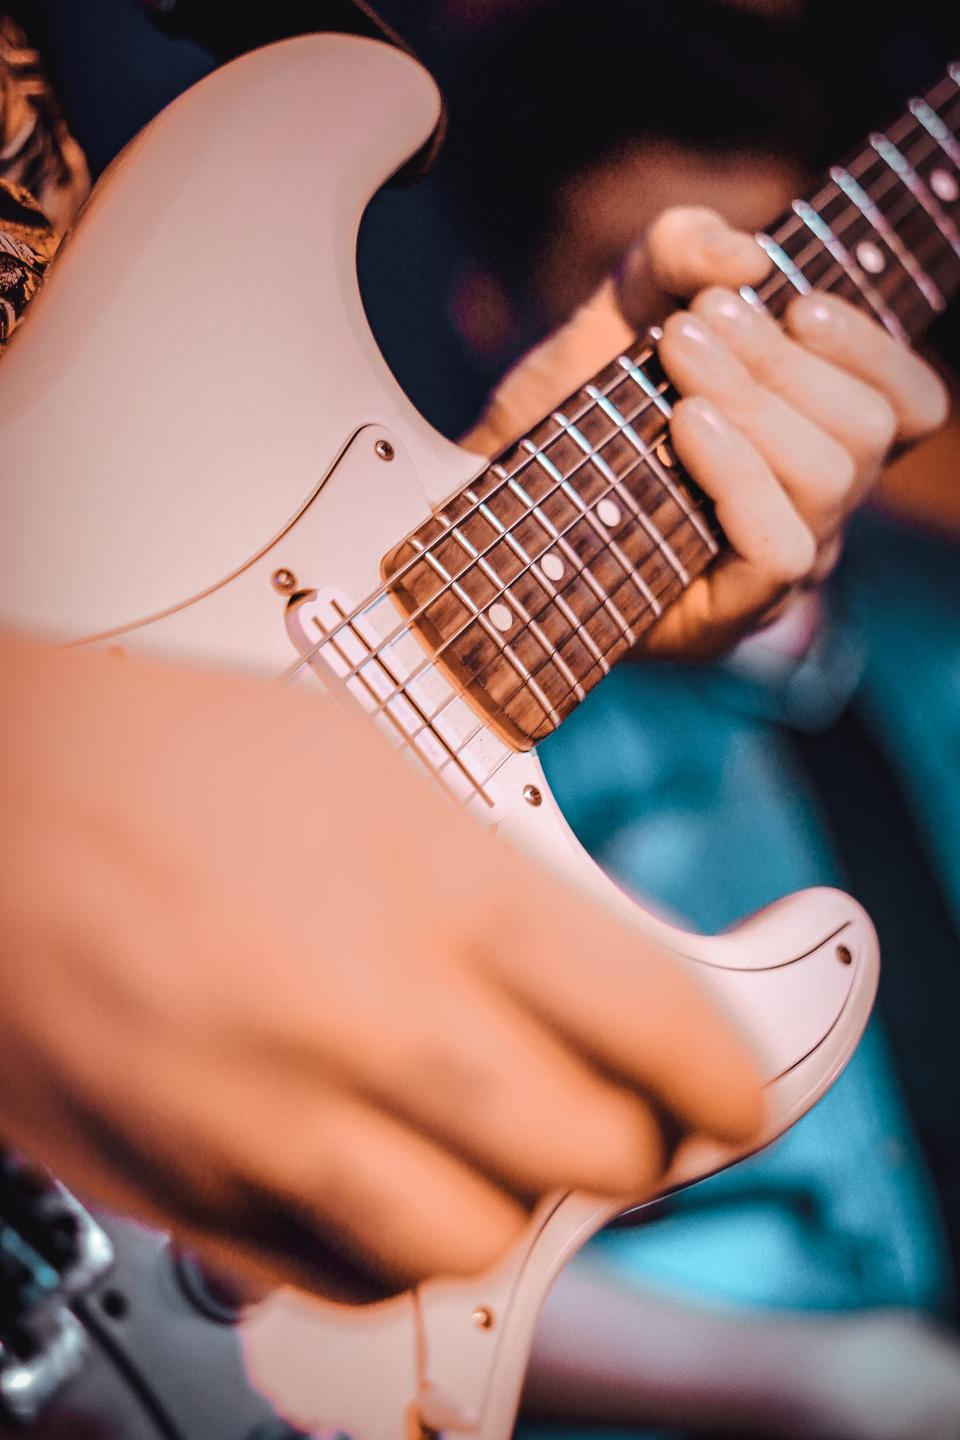 Musicians hands, playing guitar